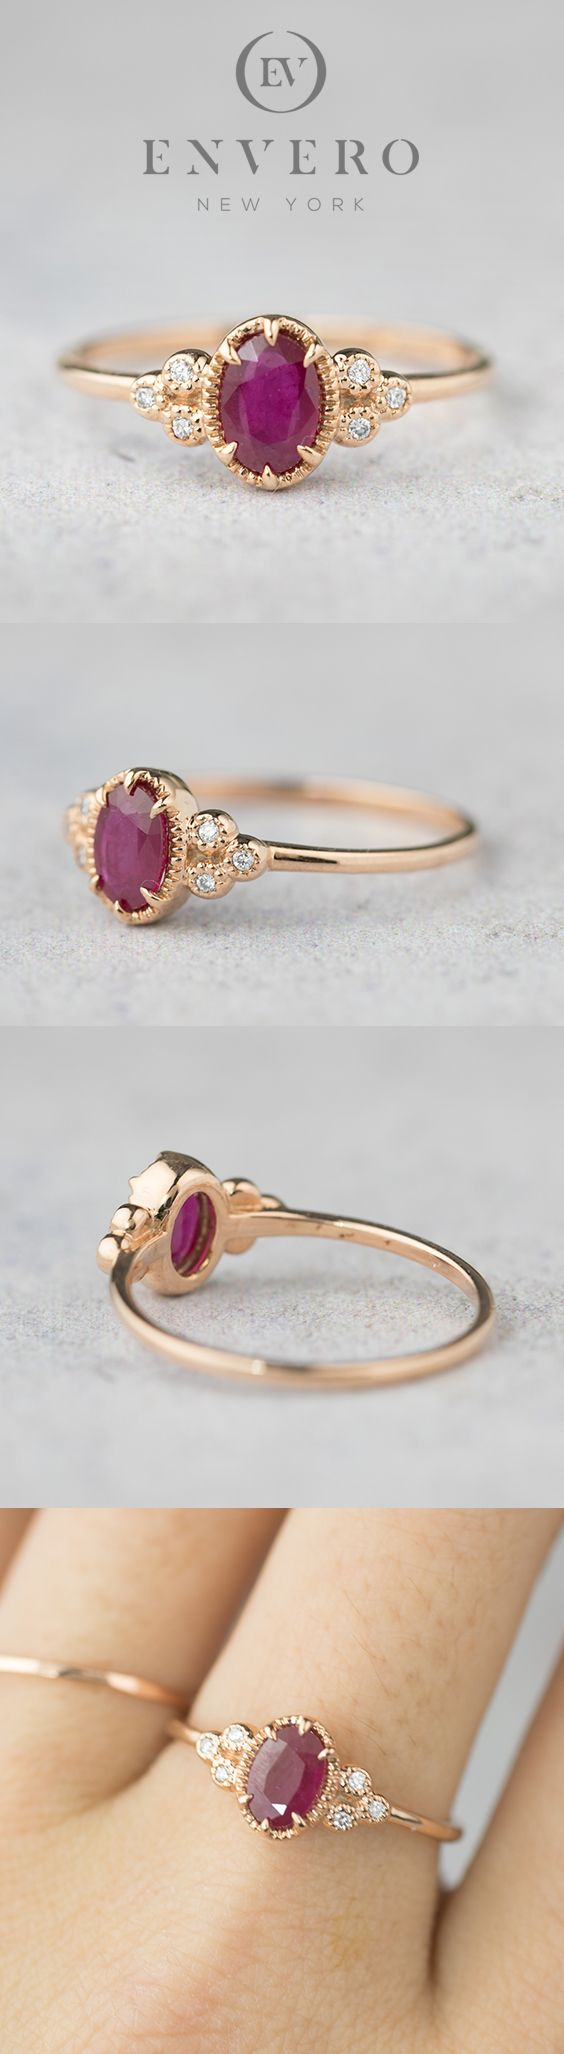 14k rose gold ruby diamond engagement ring. Perfect alternative engagement ring as well as valentine's day gift. Ruby is a birthstone for july. Give this romantic red ruby ring to your special someone as a token on love.